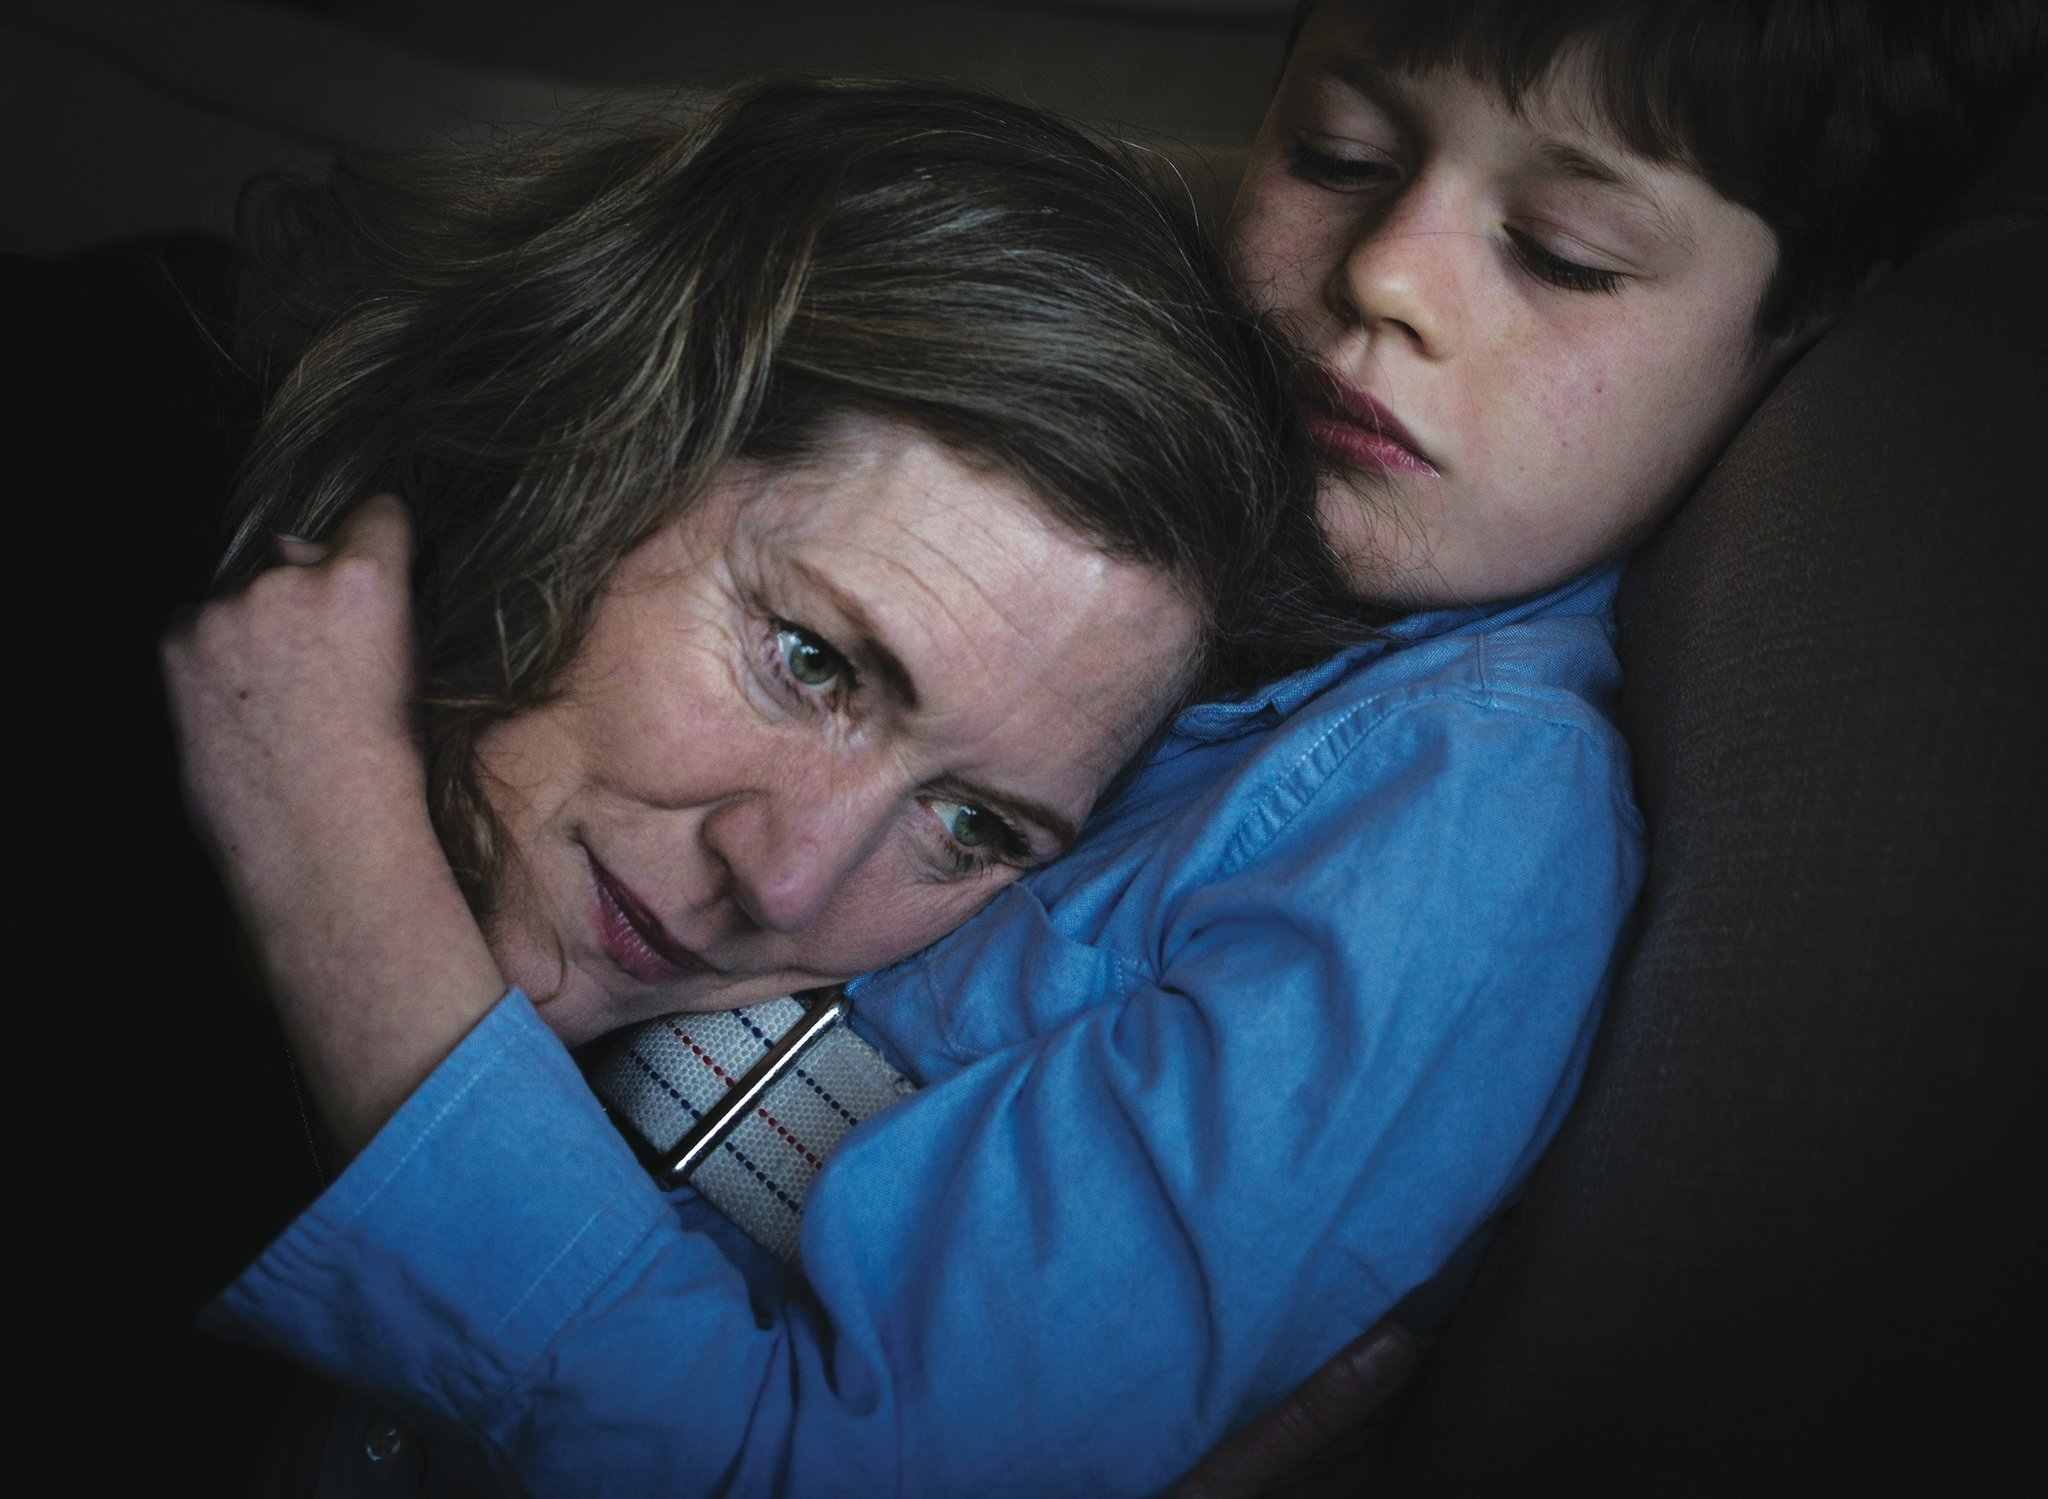 Catherine Jacobson and her son, Ben, at home in Mill Valley, Calif. His seizures have left him with very little ability to communicate, but one of his main ways of showing affection is hugging his mother's head close to his chest. September Dawn Bottoms for The New York Times